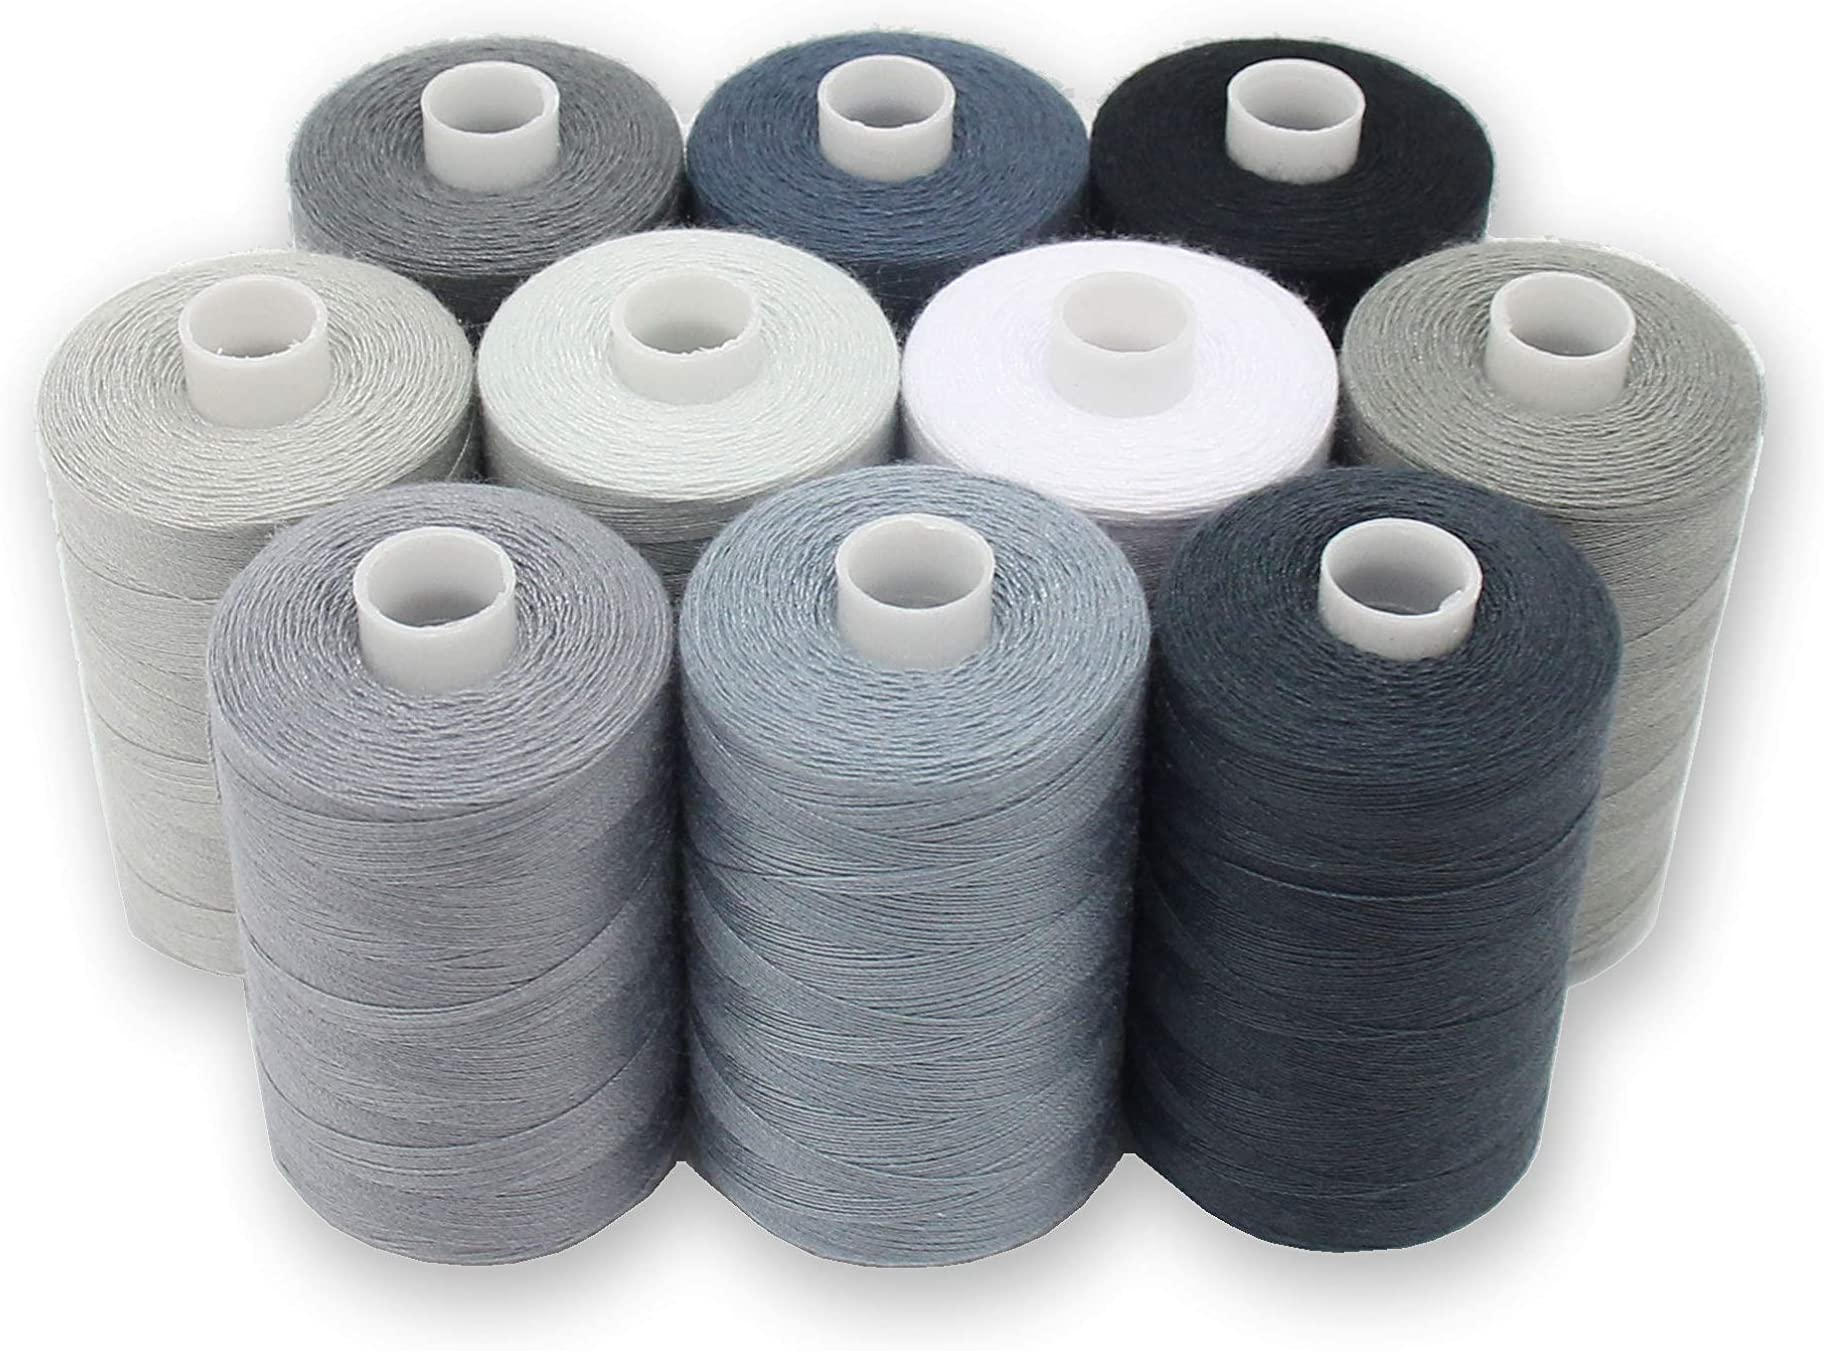 Sewing Thread Shades of Blue Assorted Lot of 22 Spools